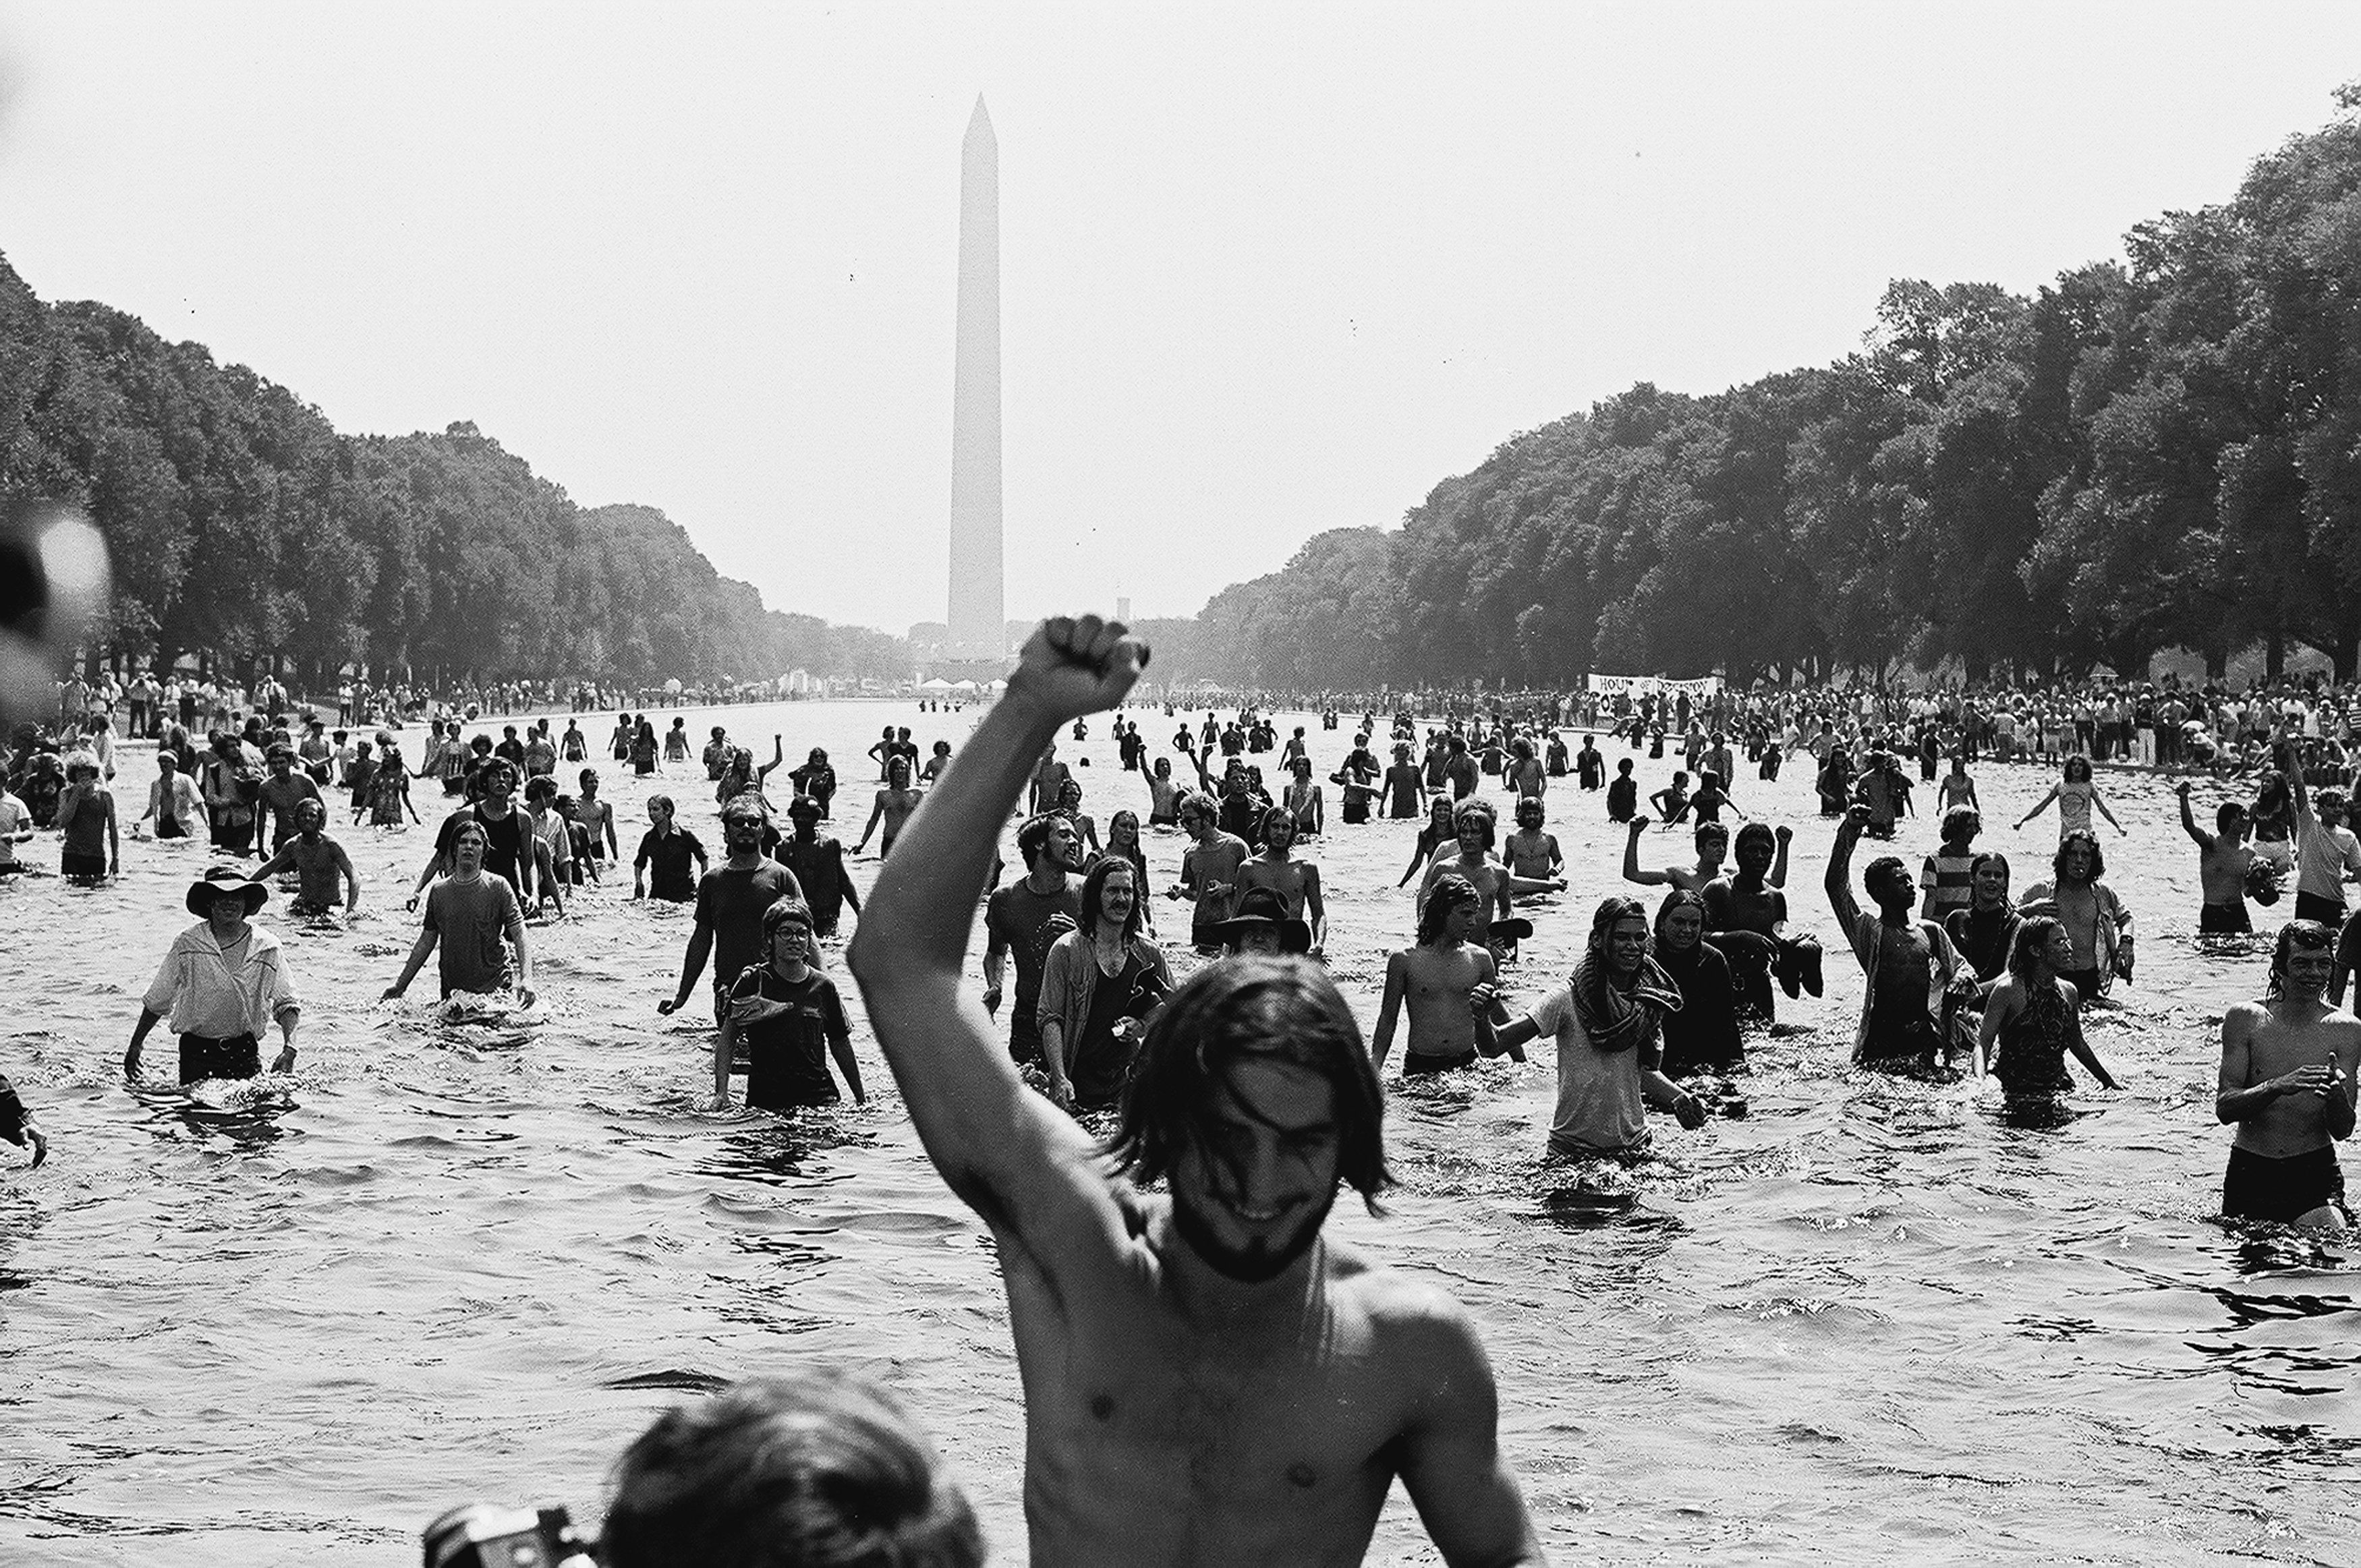 A young American protestor wades shirtless in the Reflecting Pool on the Mall facing away from the Washington Monument during the 'Honor America Day Smoke-In' thrown by marijuana activists to protest the official 'Honor America Day' ceremonies being held at the Lincoln Memorial, Washington, DC, July 4, 1970. (Photo by David Fenton/Getty Images)